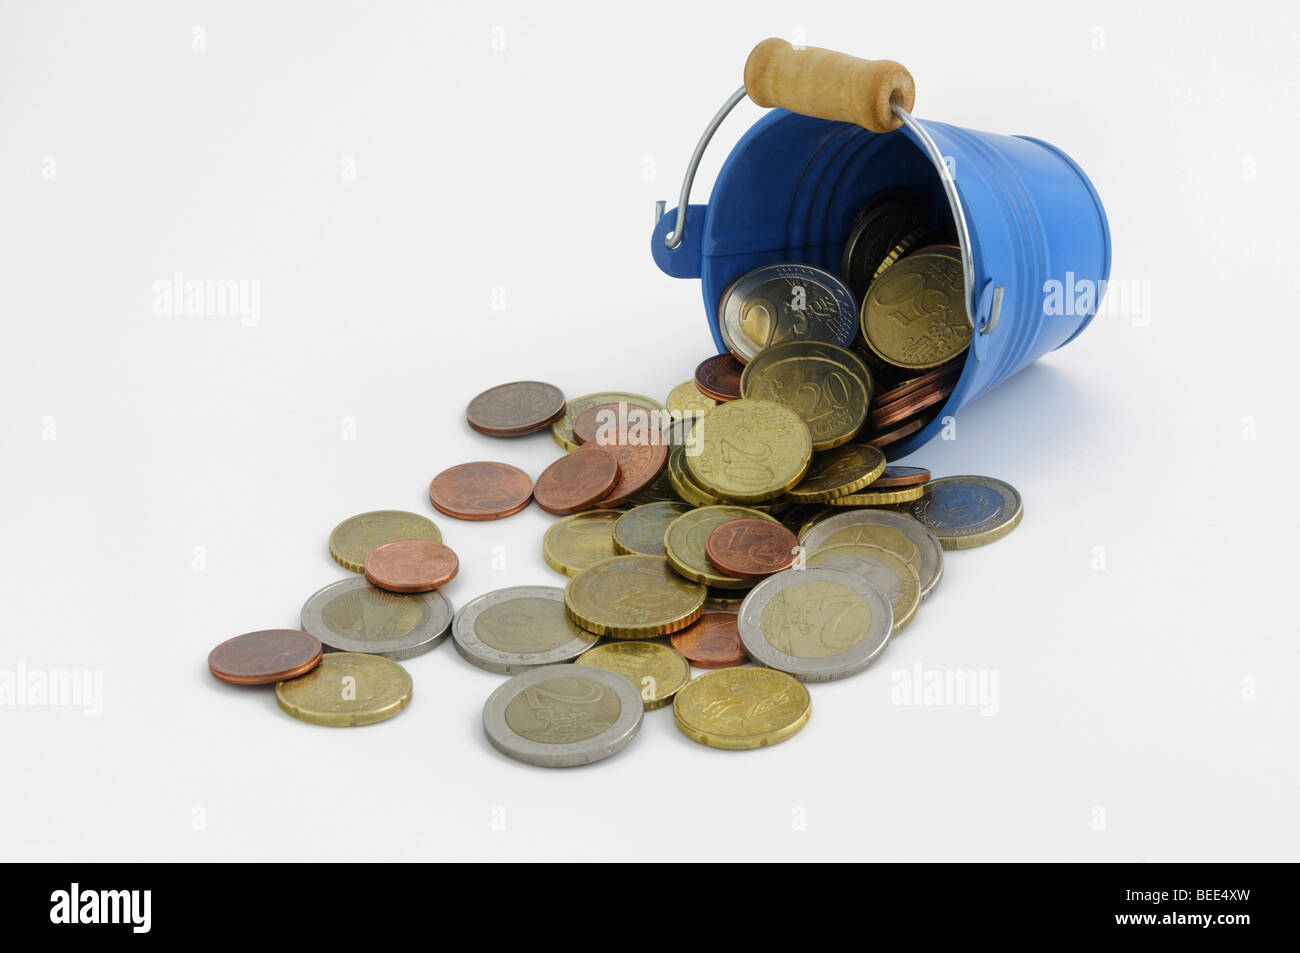 Small blue metal bucket with spilled Euro coins - Stock Image